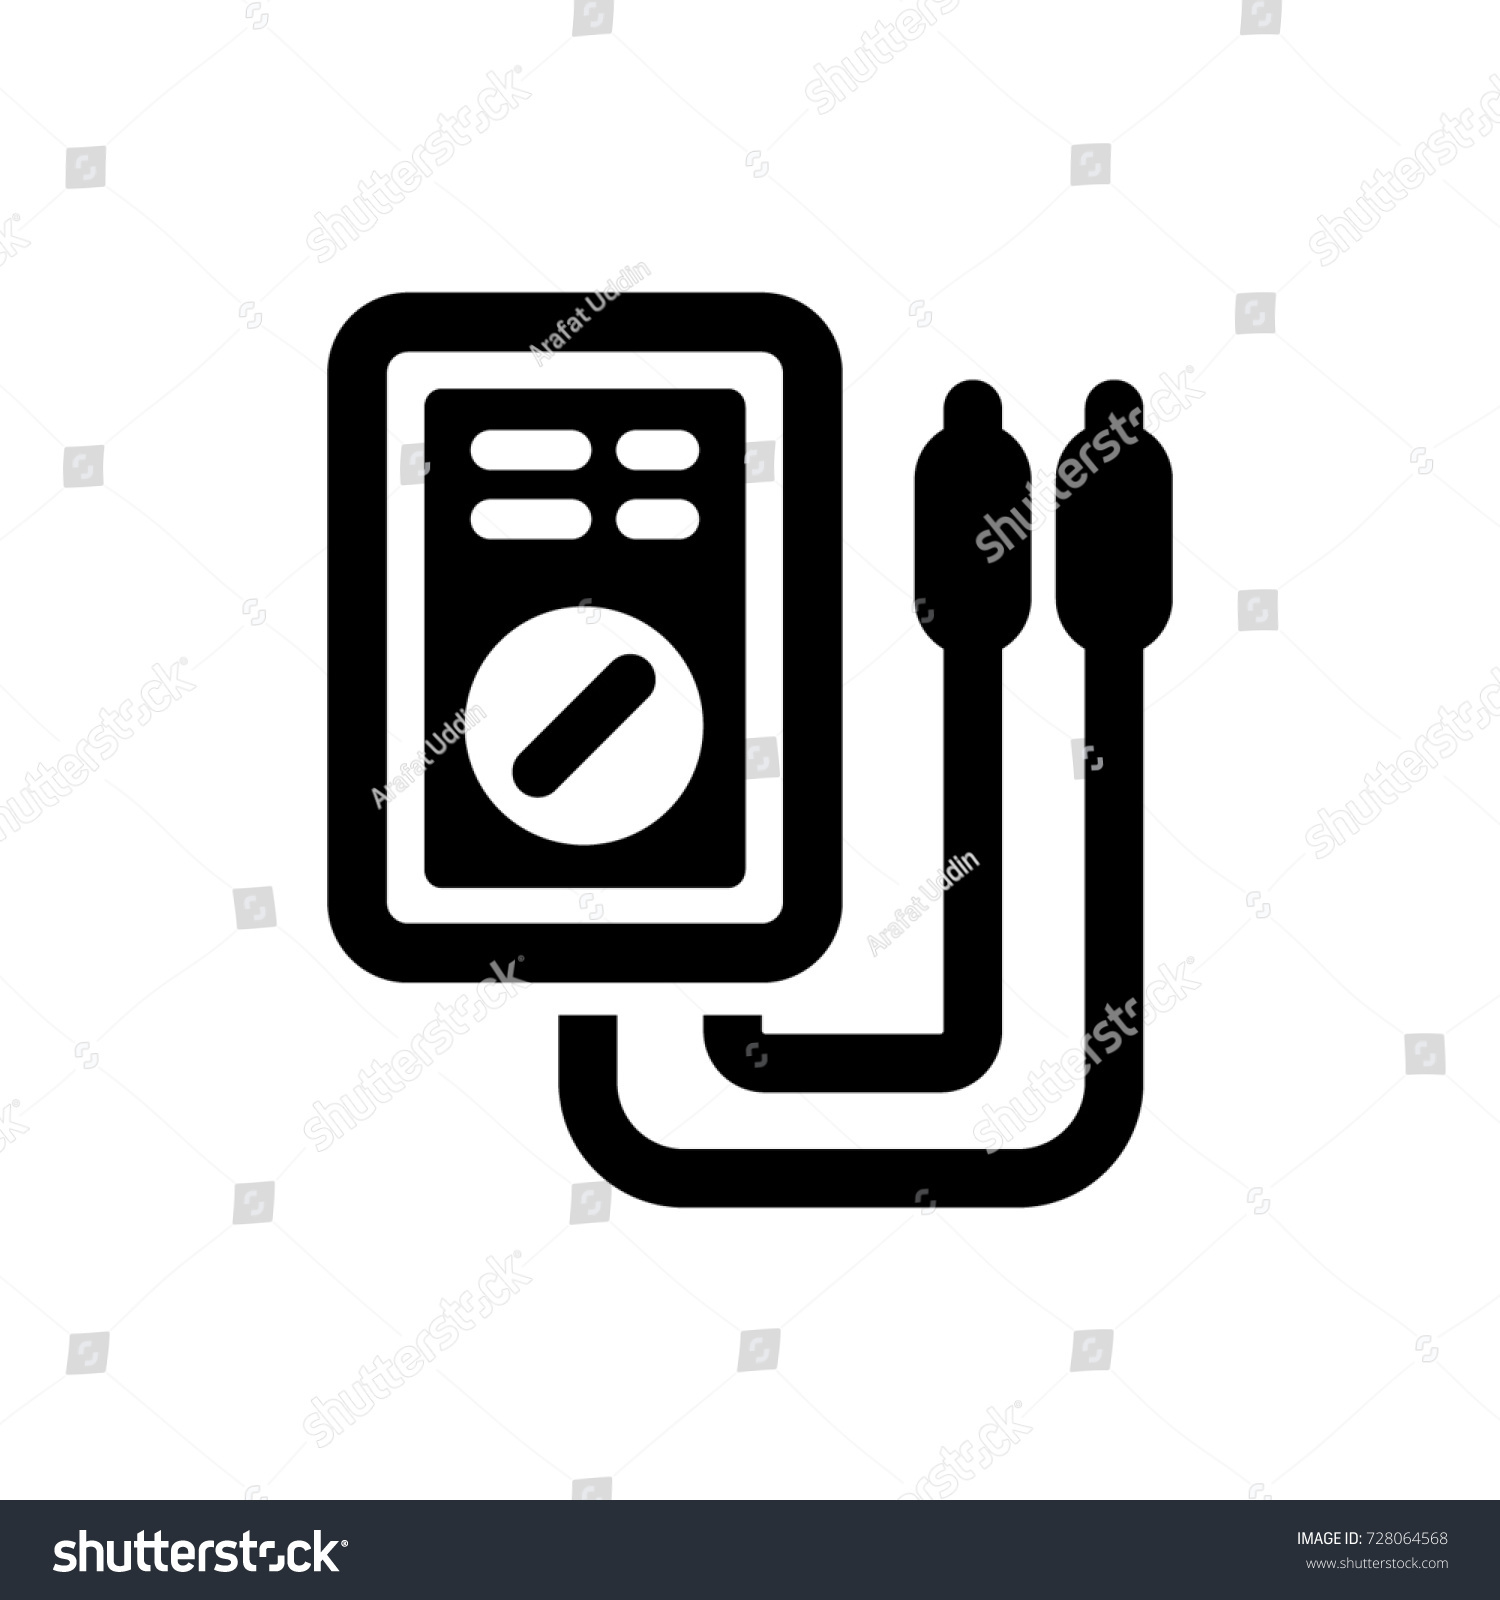 Charming Wiring Diagram For 150cc Scooter Small Dimarzio Pickup Wiring Color Code Round 3 Coil Pickup Gibson 3 Way Switch Young Guitar 5 Way Switch BlackWiring Gitar Voltmeter Icon Stock Vector 728064568   Shutterstock